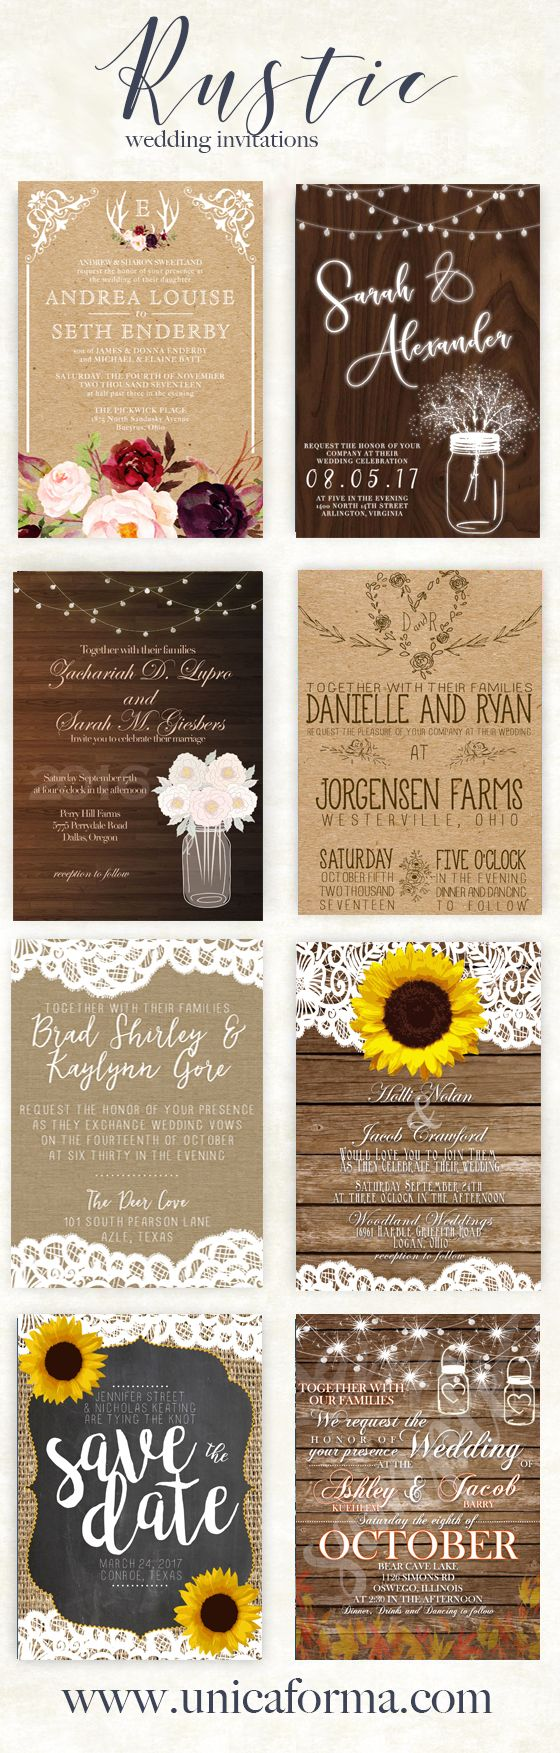 free wedding invitation templates country theme%0A Rustic wedding invitations  Sunflower wedding invitations  Burlap and lace  wood wedding  Mason jars